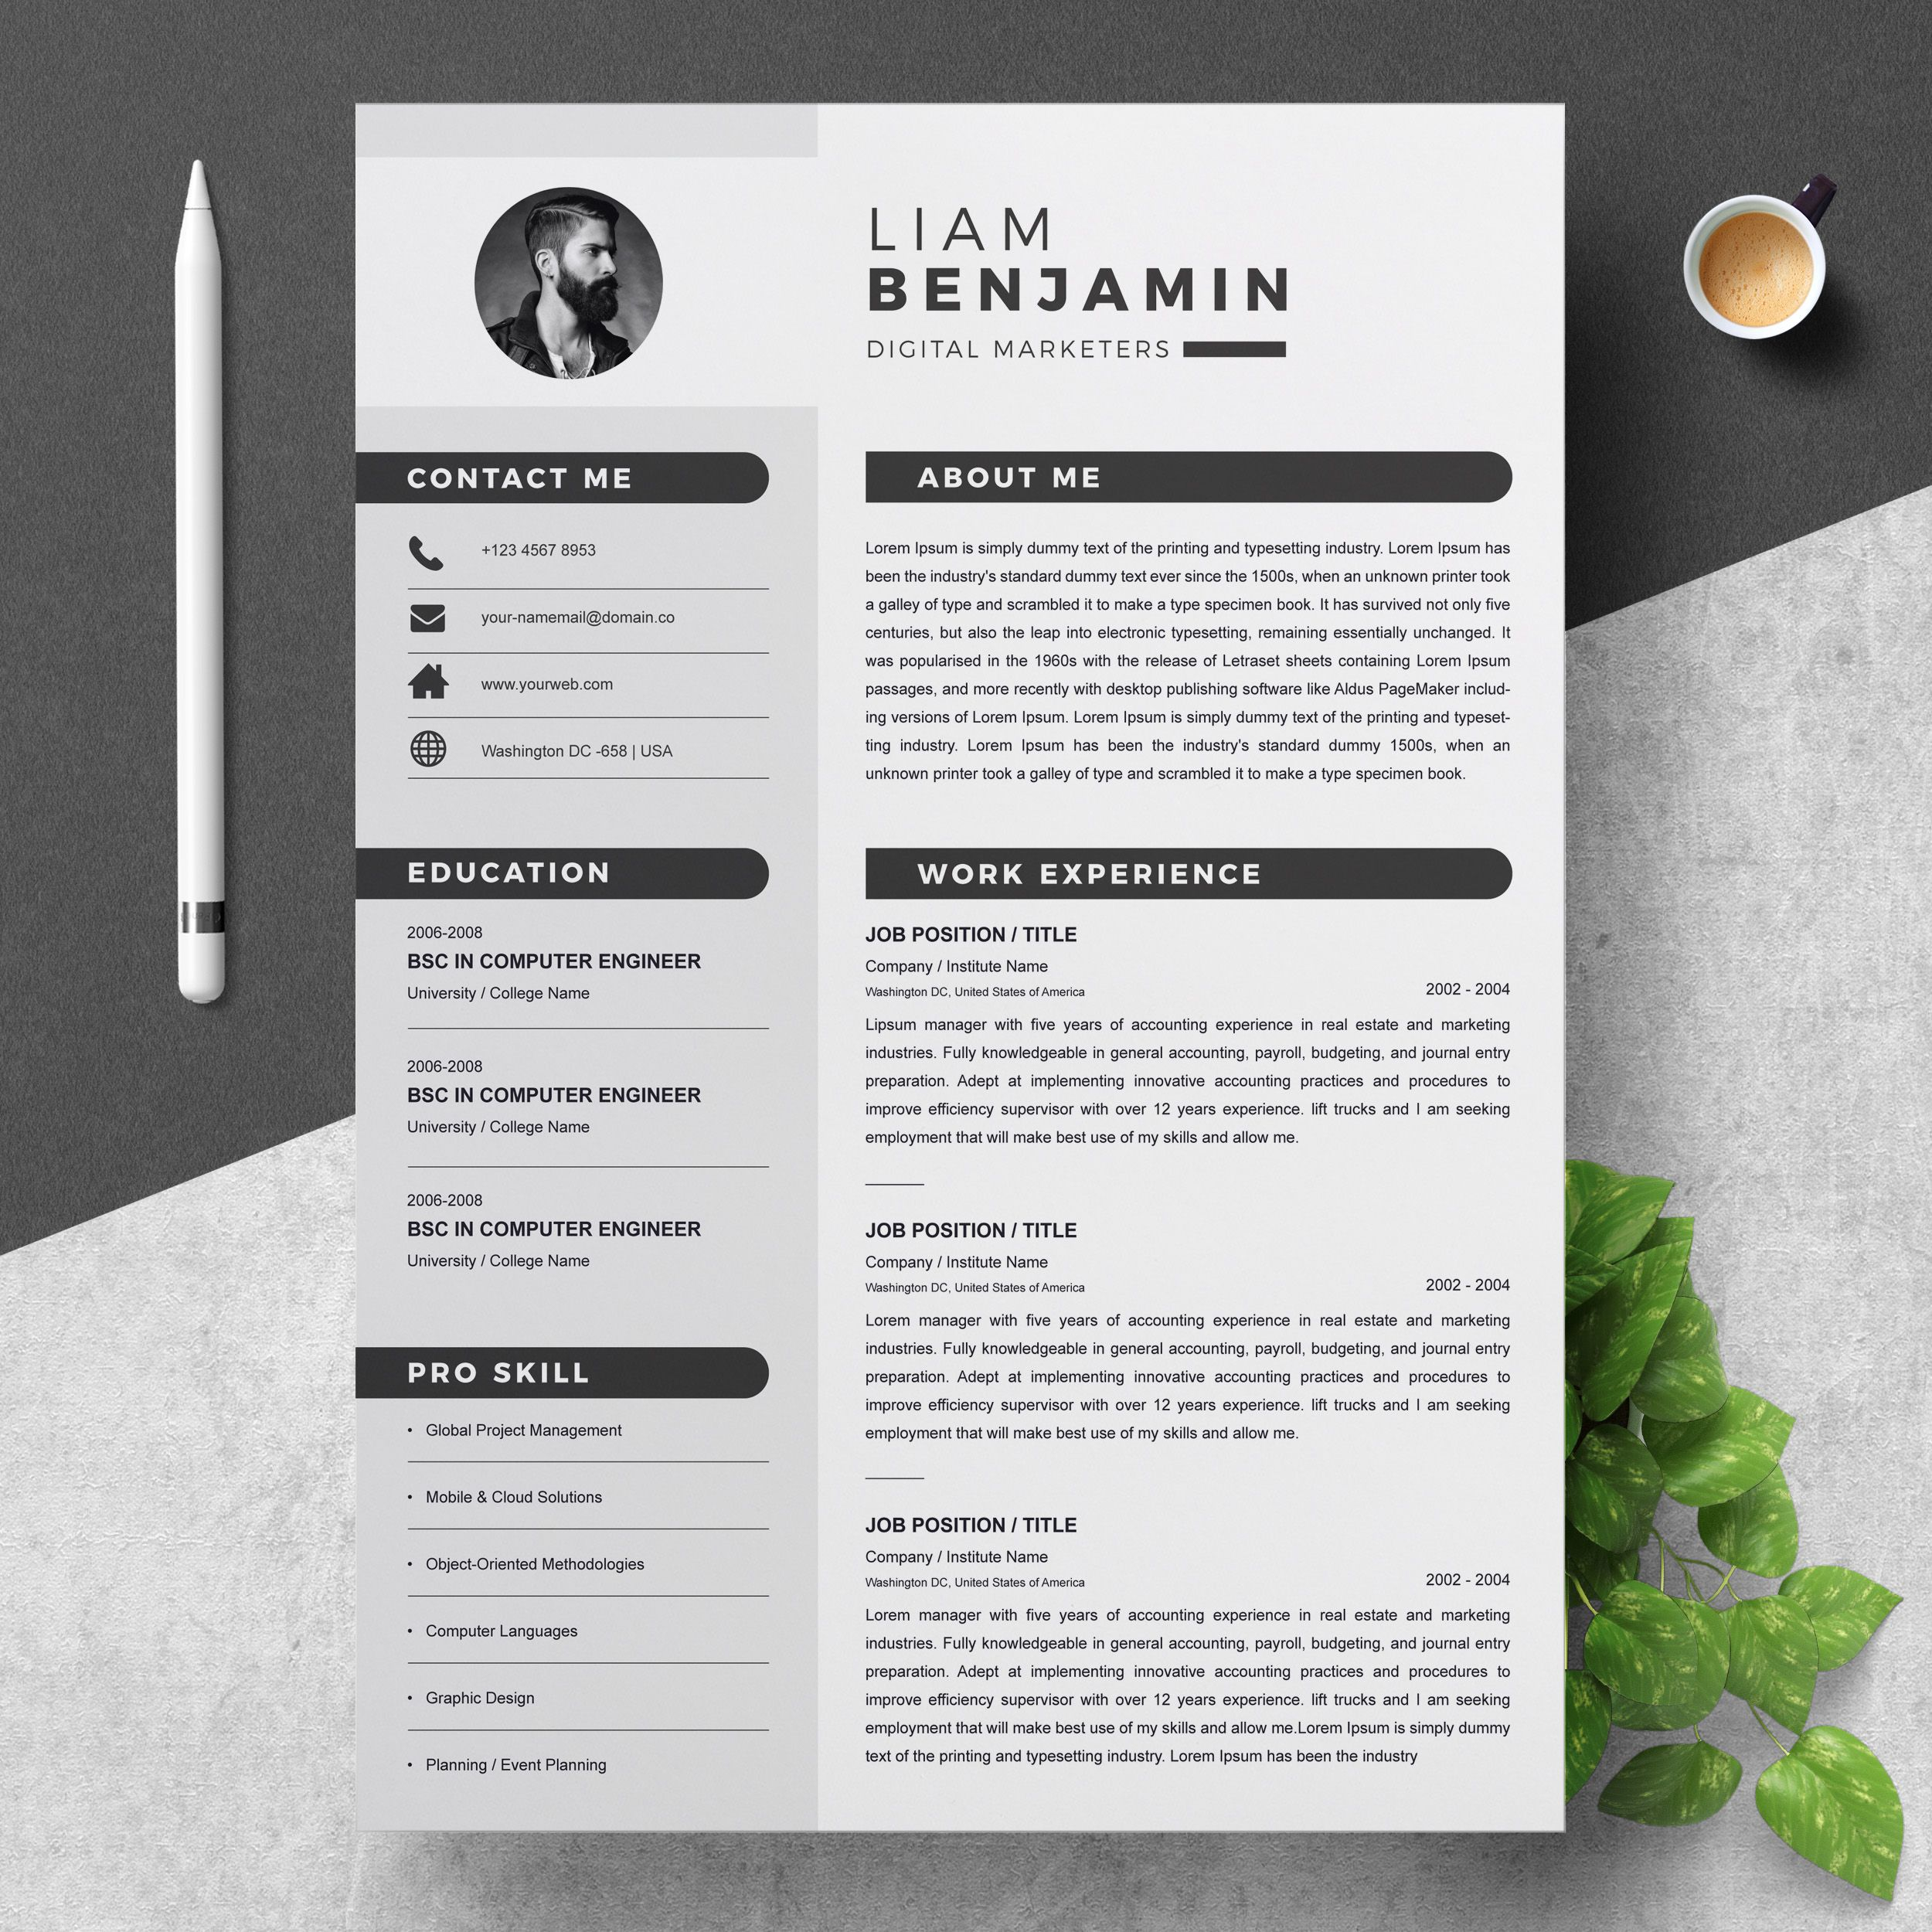 000 Phenomenal Download Template For Word Concept  Wordpres Free Resume 2007 Addres LabelFull